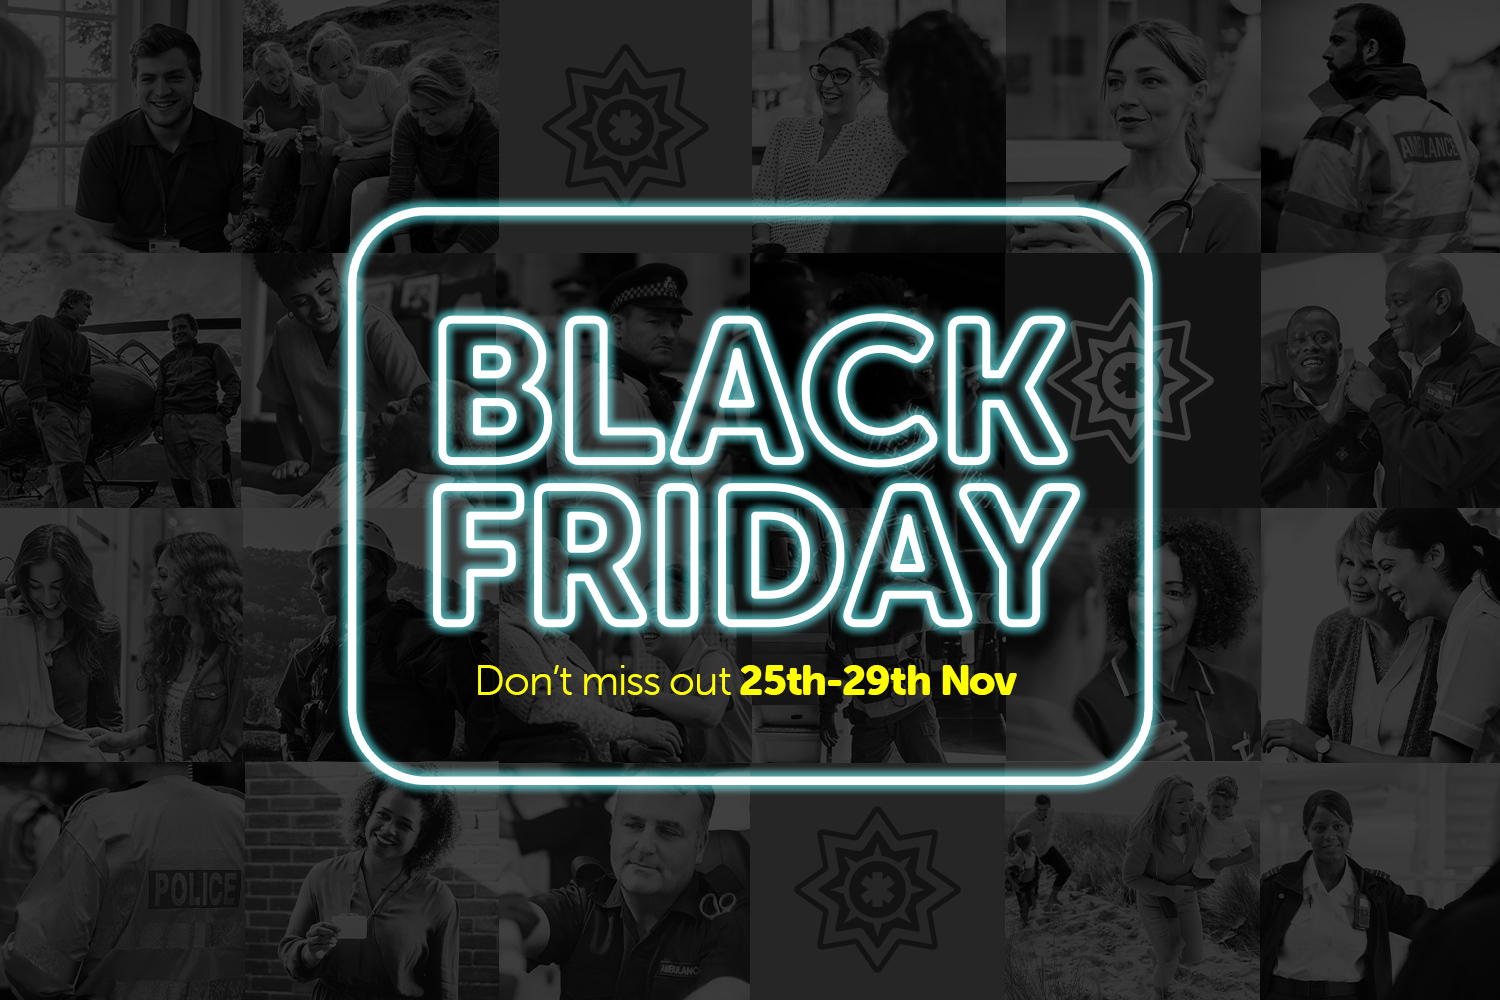 Exclusive discounts revealed for Black Friday